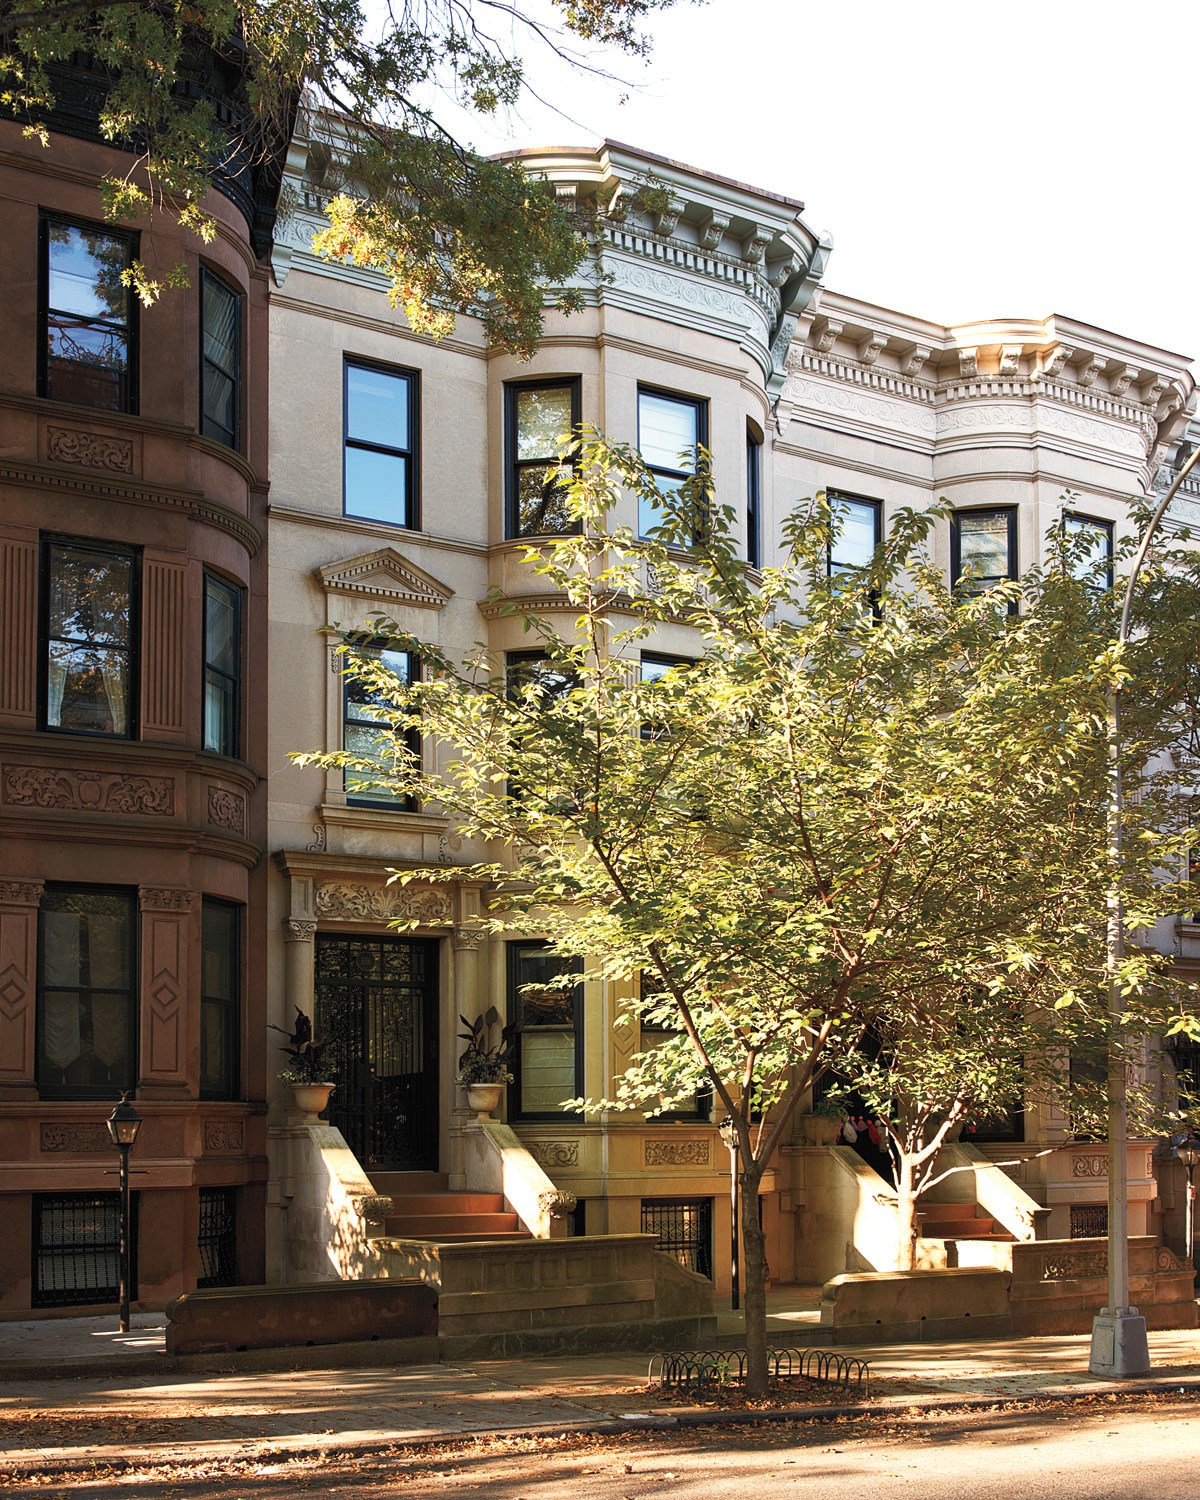 Brooklyn architects carefully restored front facade